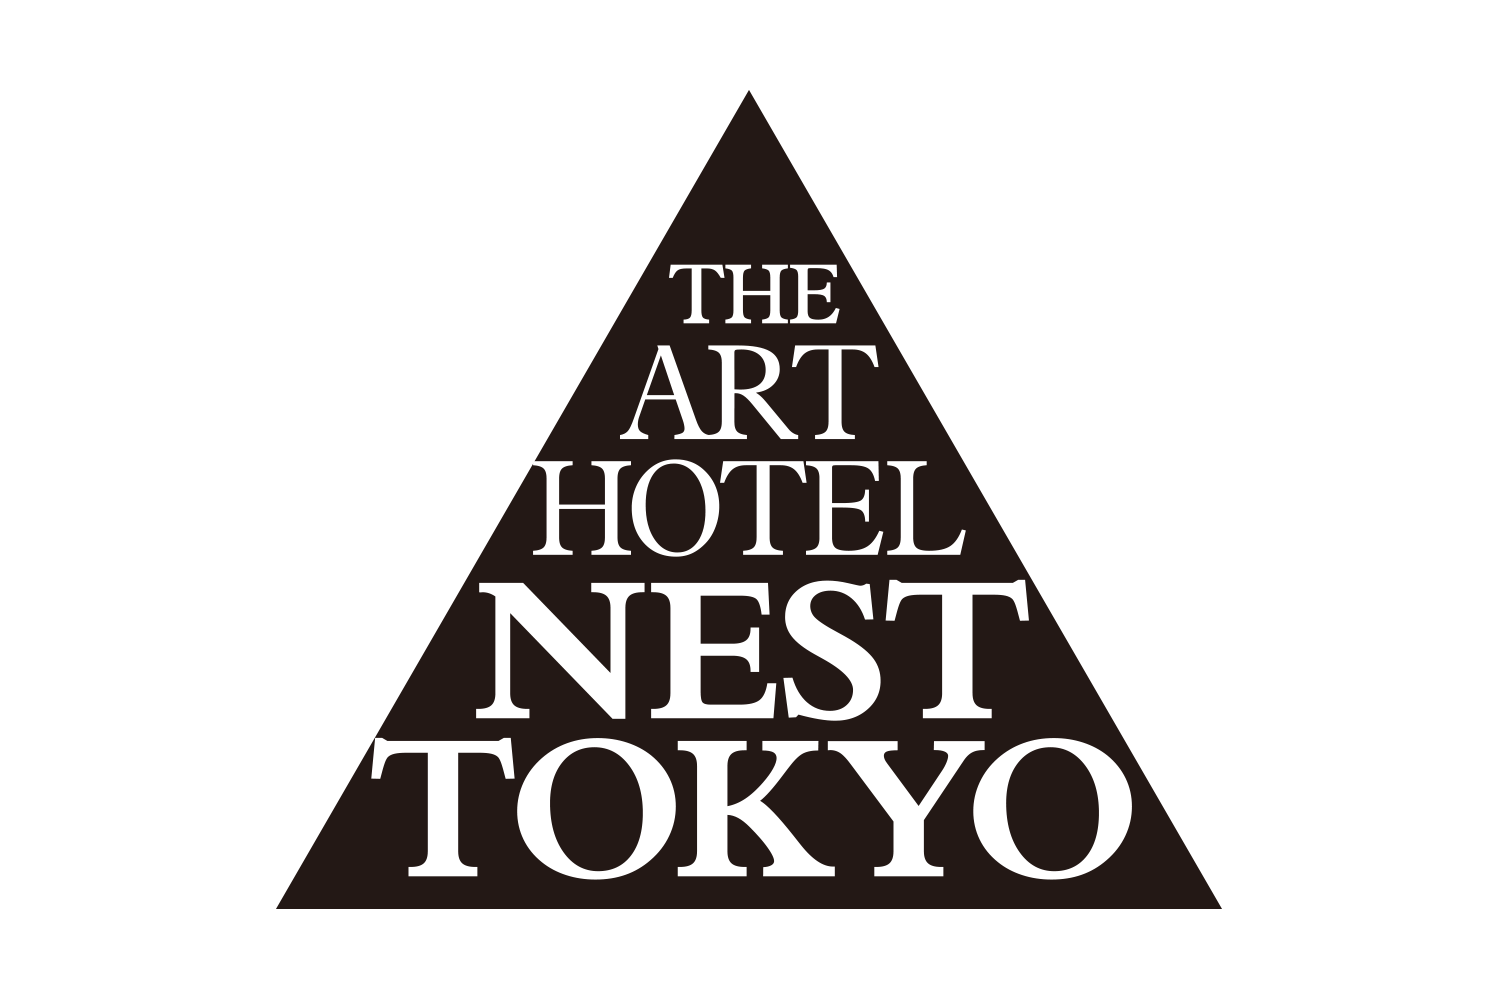 graphic_nesttokyo_01.png